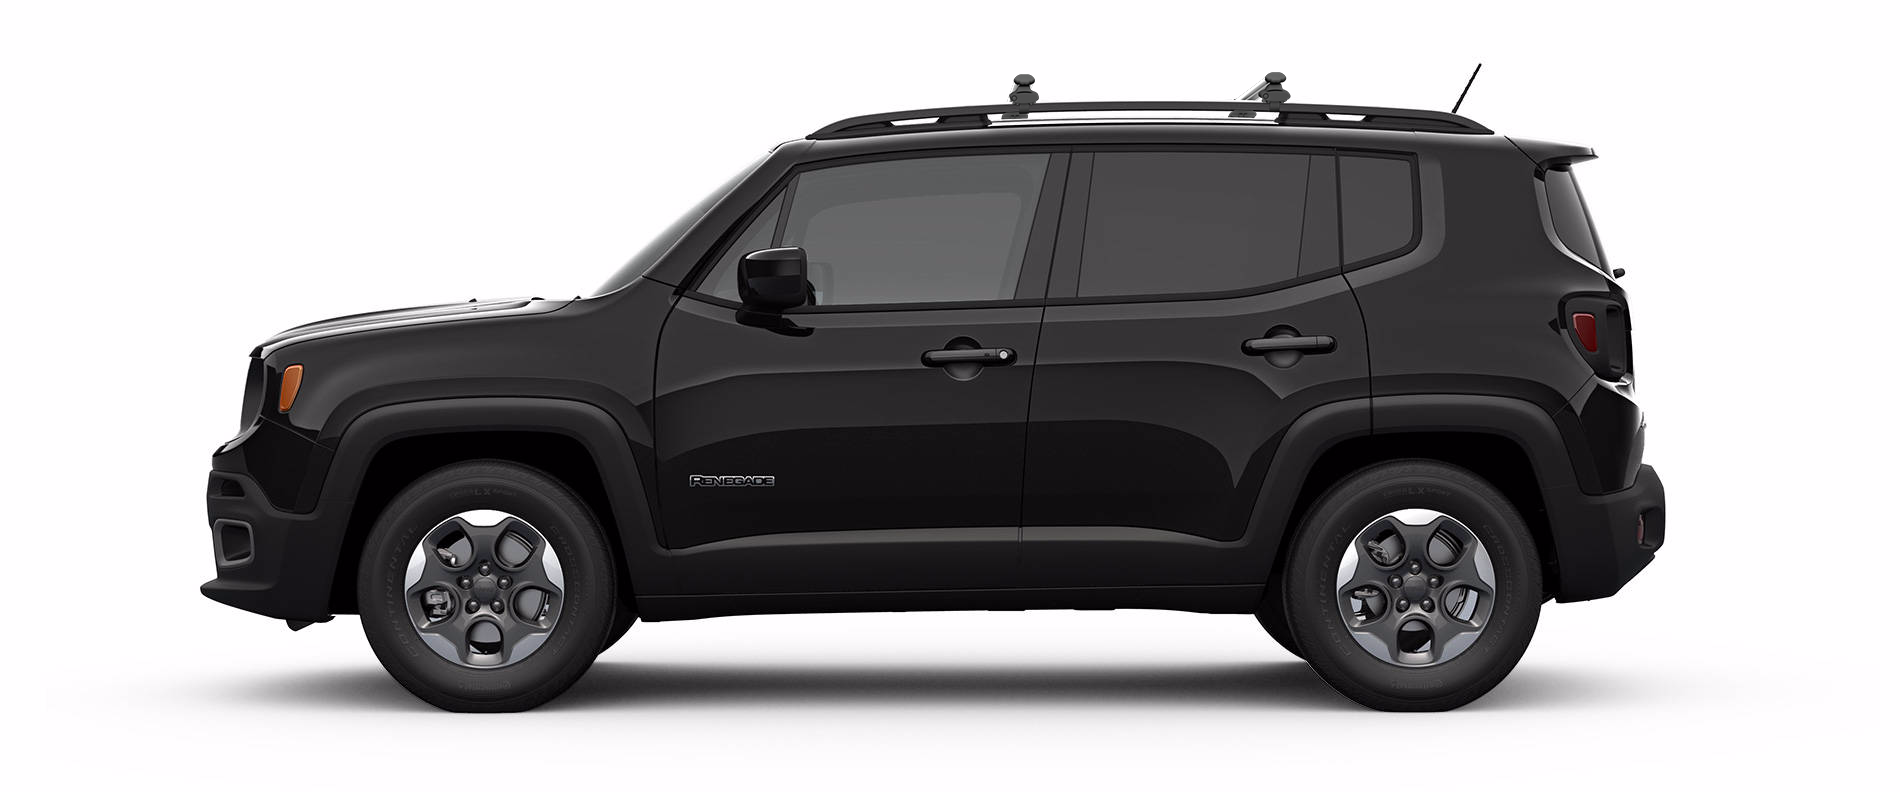 jeep renegade dawn of justice special edition 4x4 exterior image gallery pictures photos. Black Bedroom Furniture Sets. Home Design Ideas